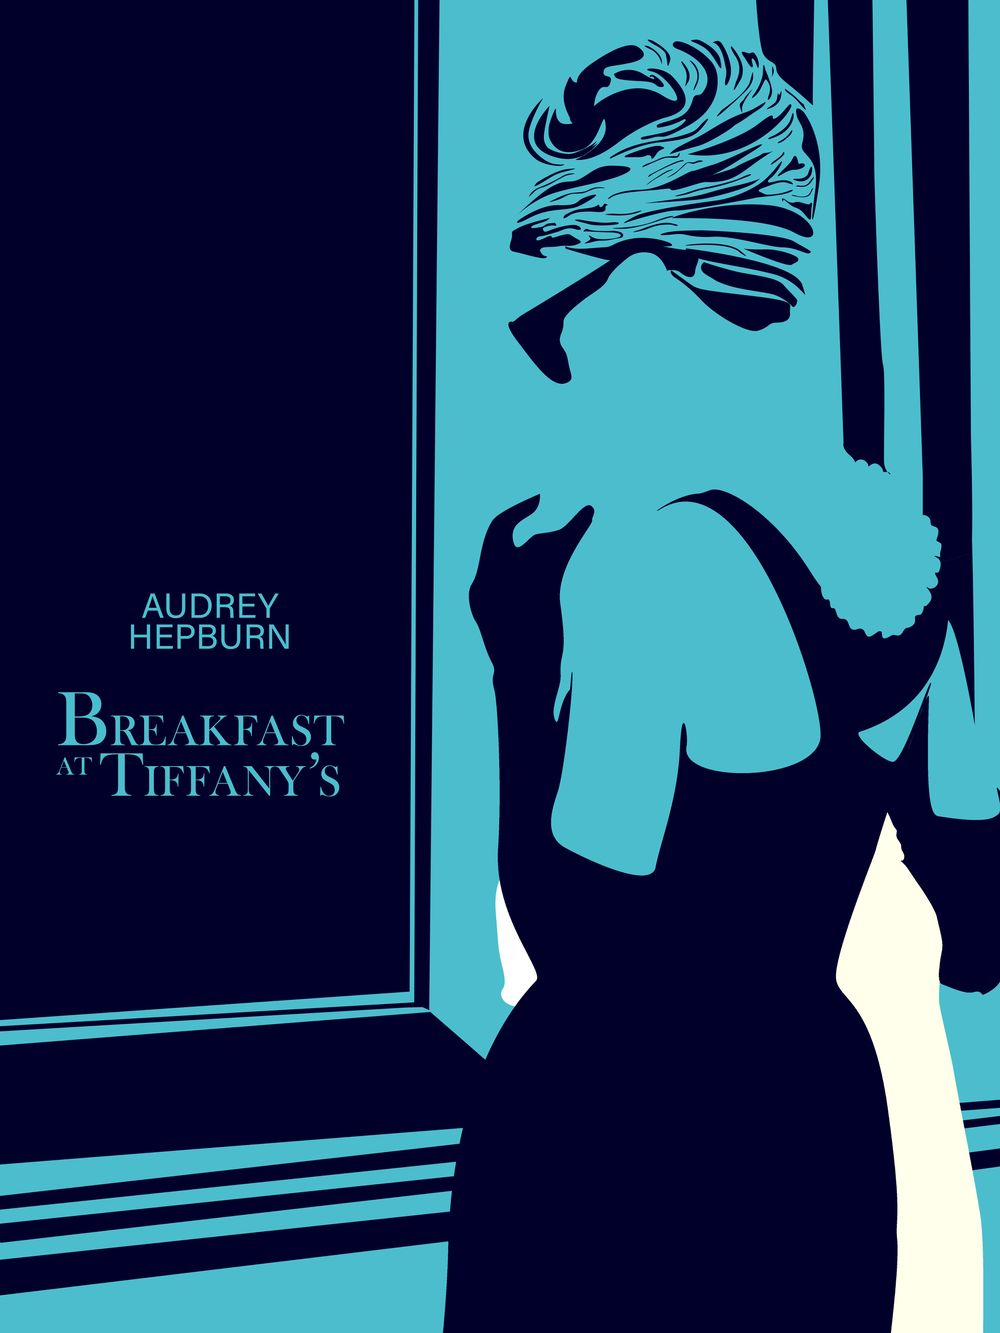 Breakfast at Tiffany's Poster - image 1 - student project